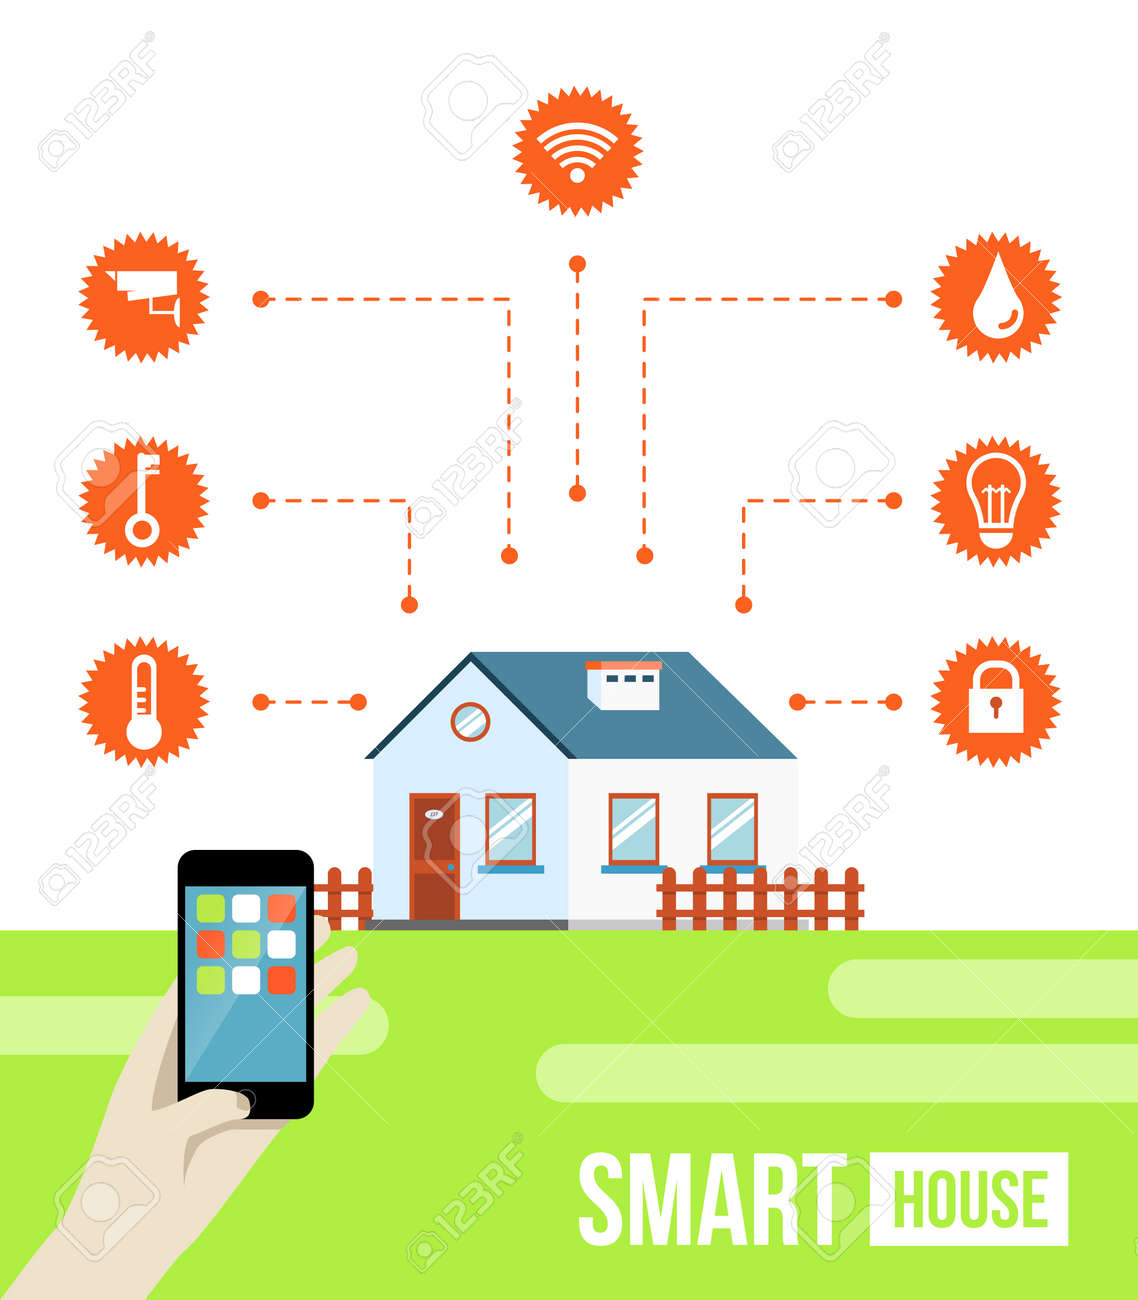 Smart Home Technology Vector Concept Of Smart House Or Smart Home Technology System